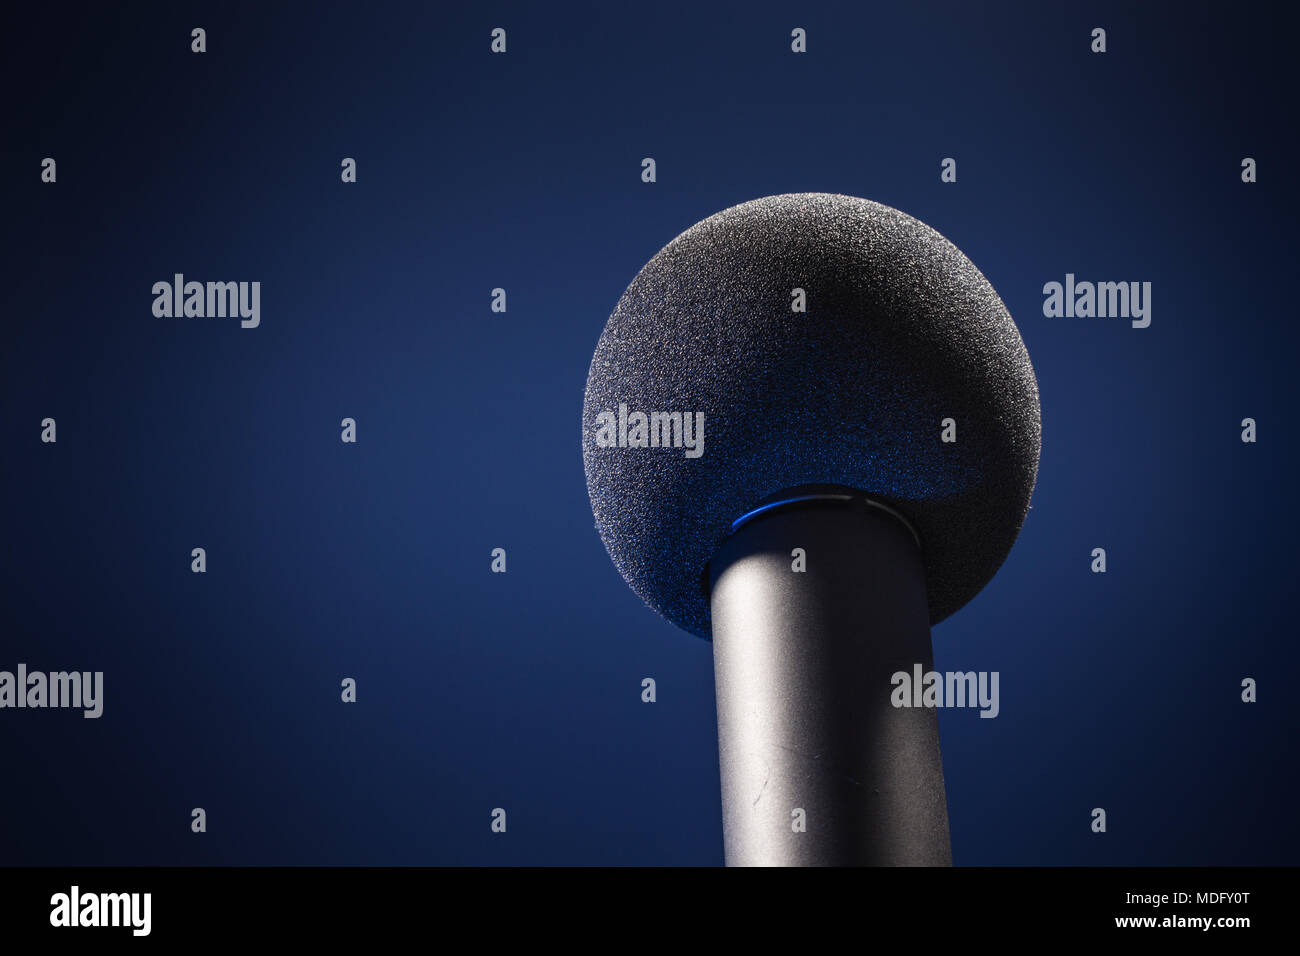 Microphone with black foam ball on a stage - Stock Image